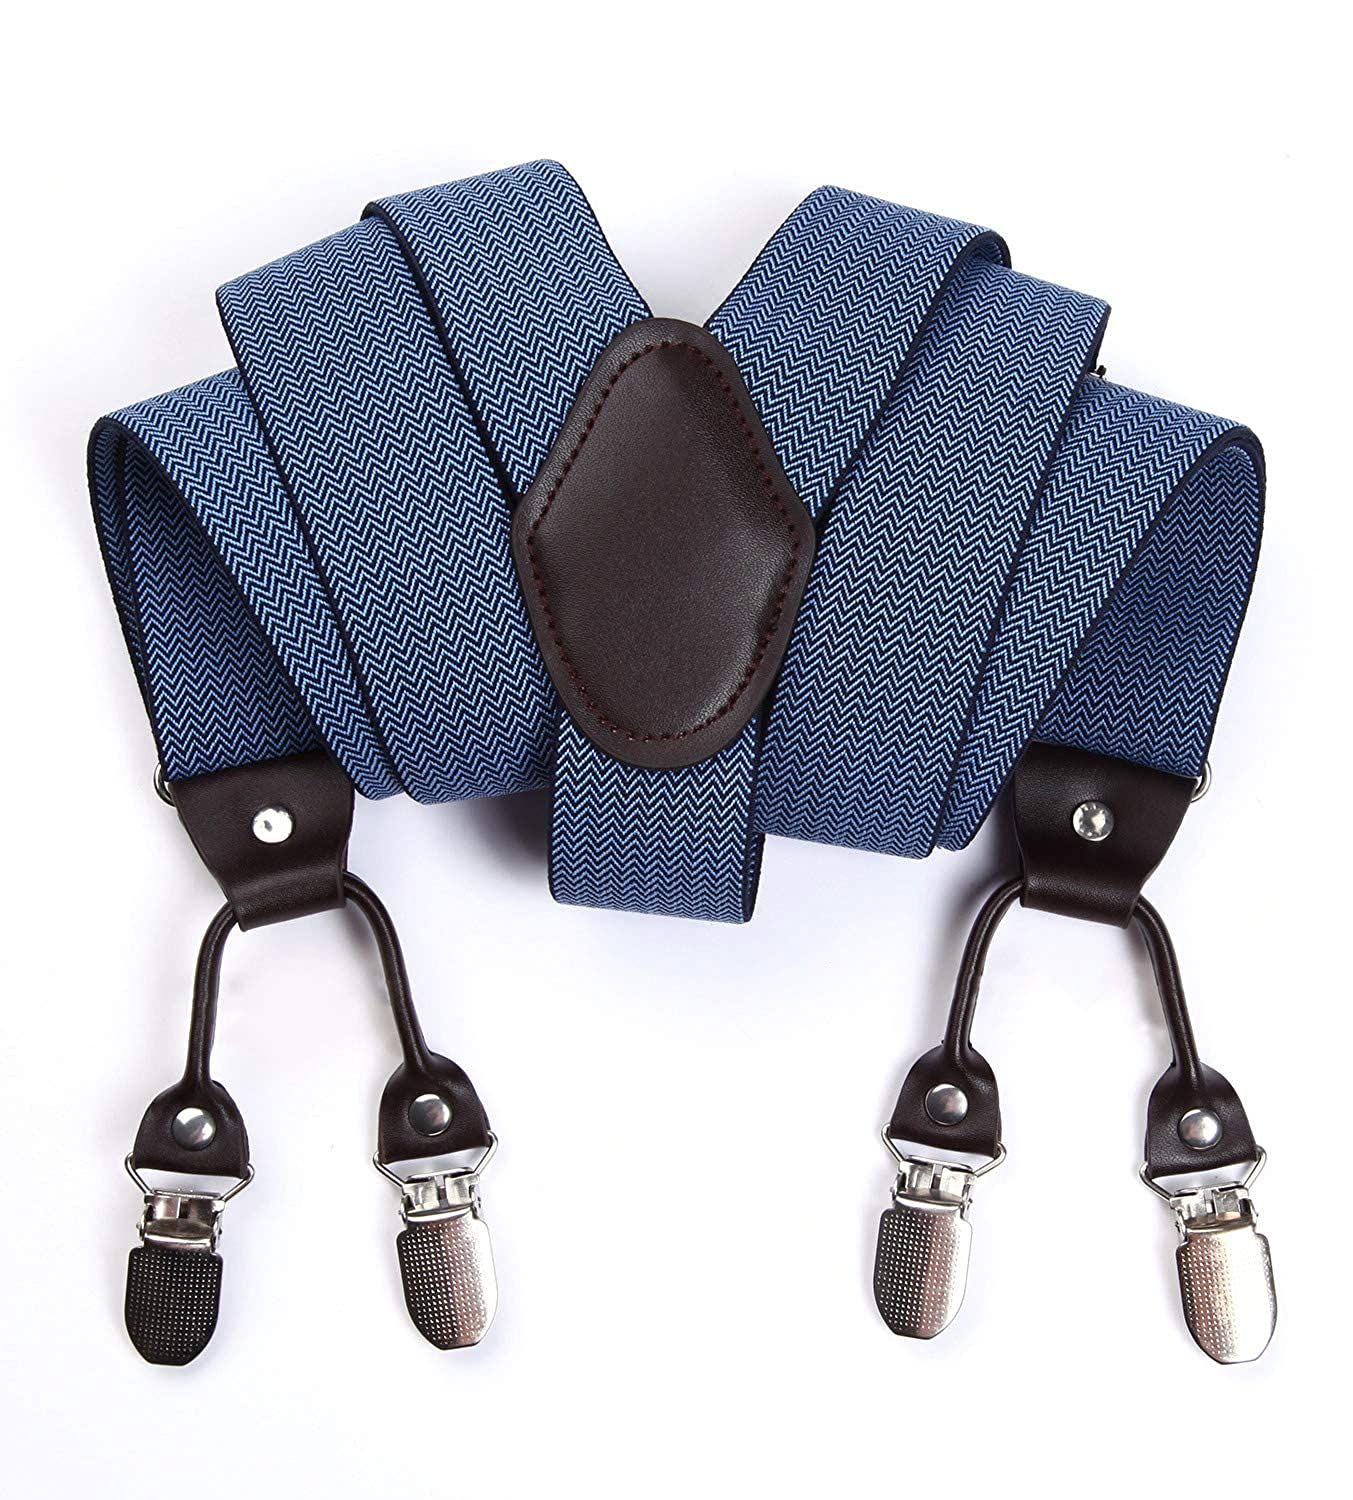 HISDERN Mens Braces Adjustable Solid Color Check Suspender With Strong 4 Metal Clips